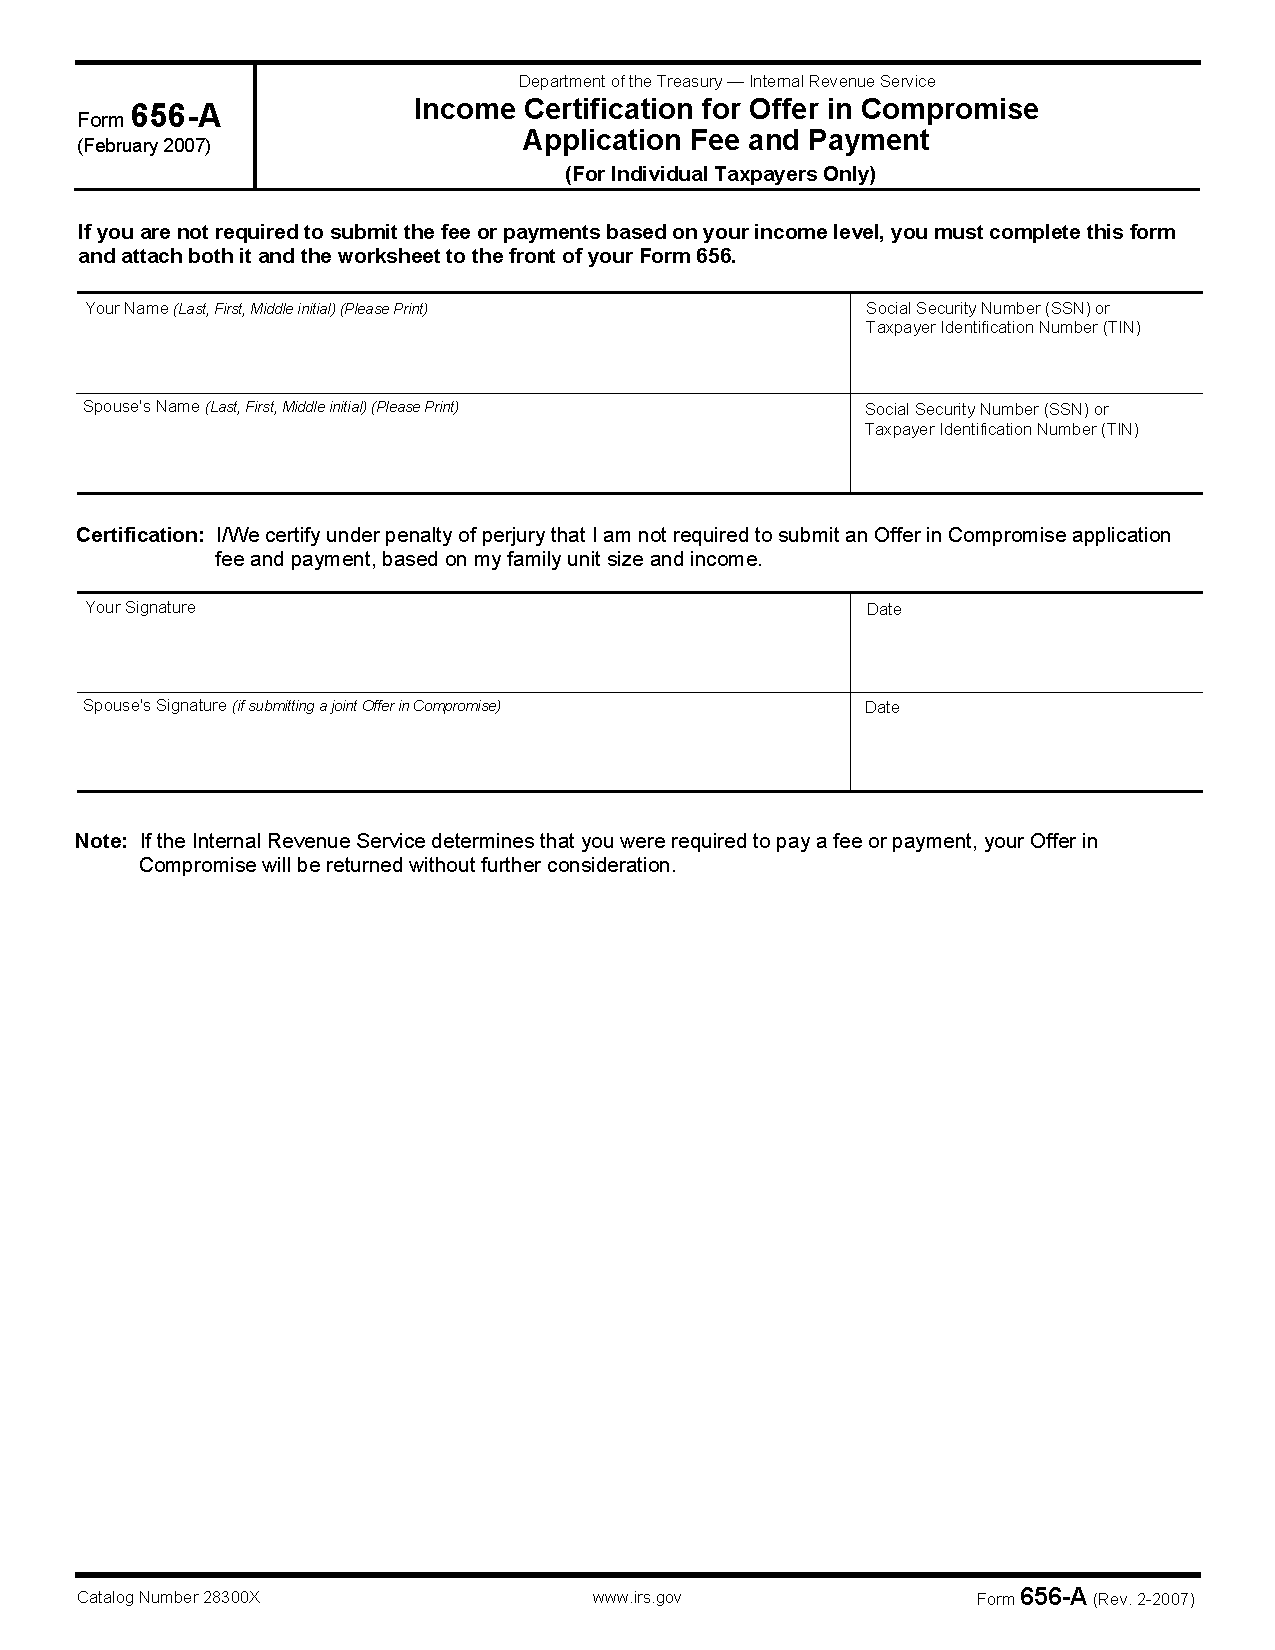 Form 656 A Income Certification For Offer In Compromise